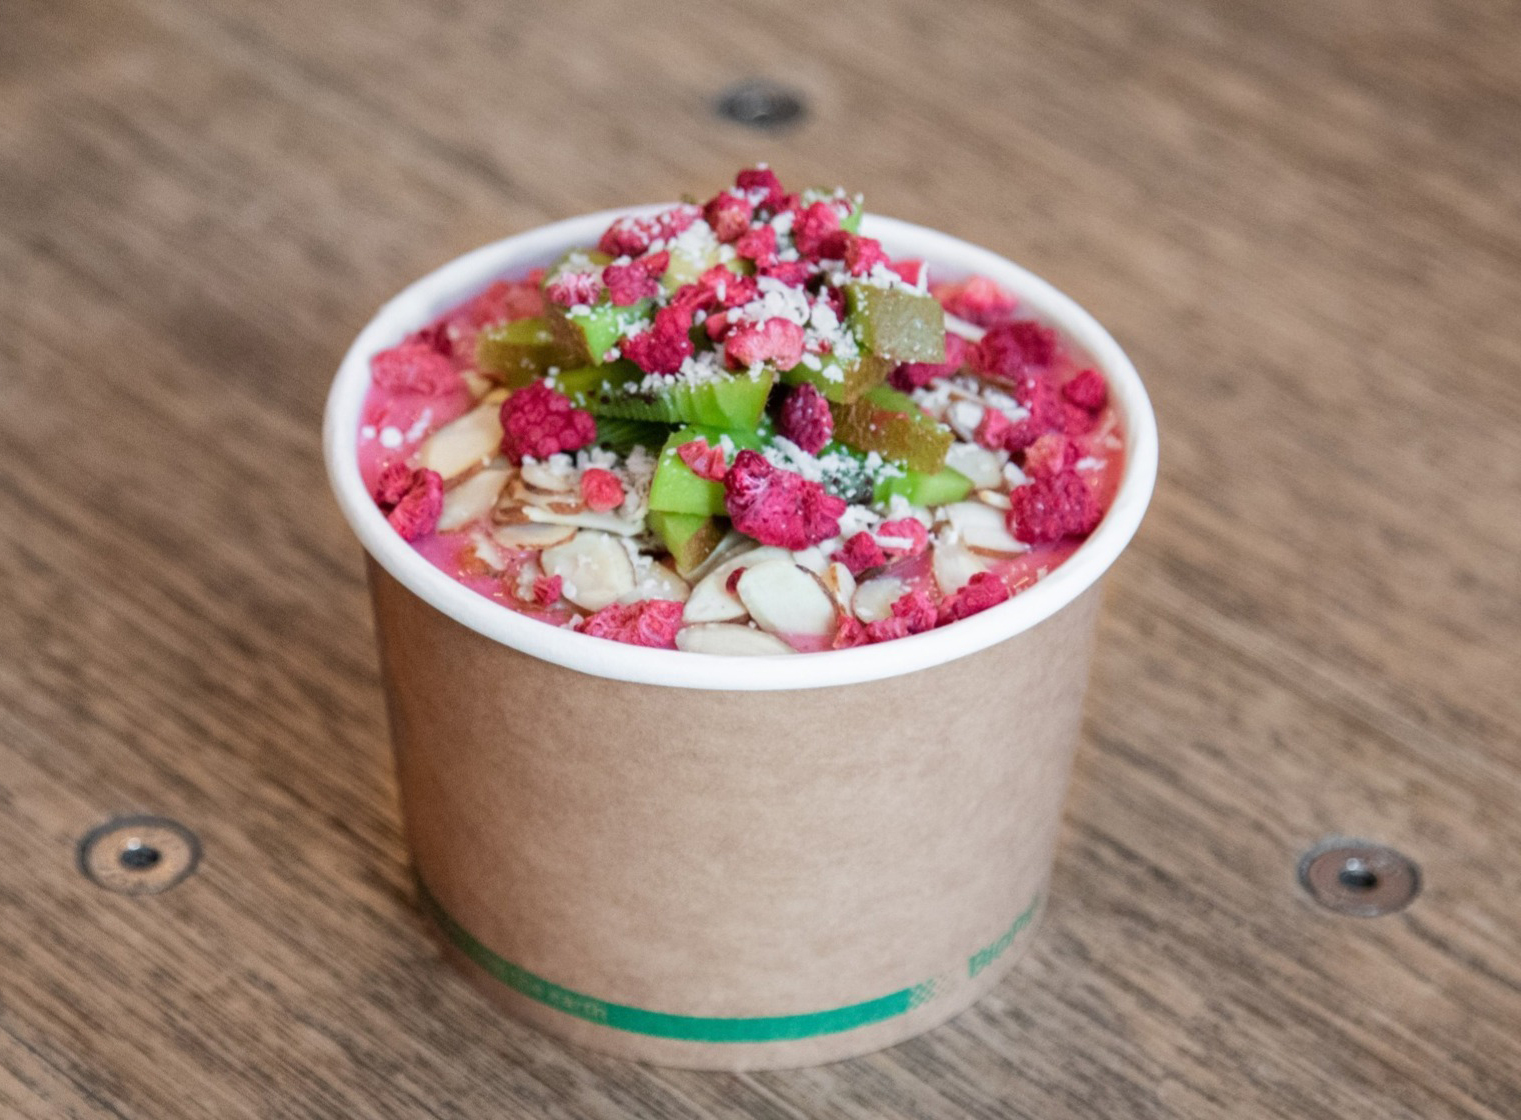 our bowls are blended fresh frozen fruit and topped with fresh fruit and super food goodies